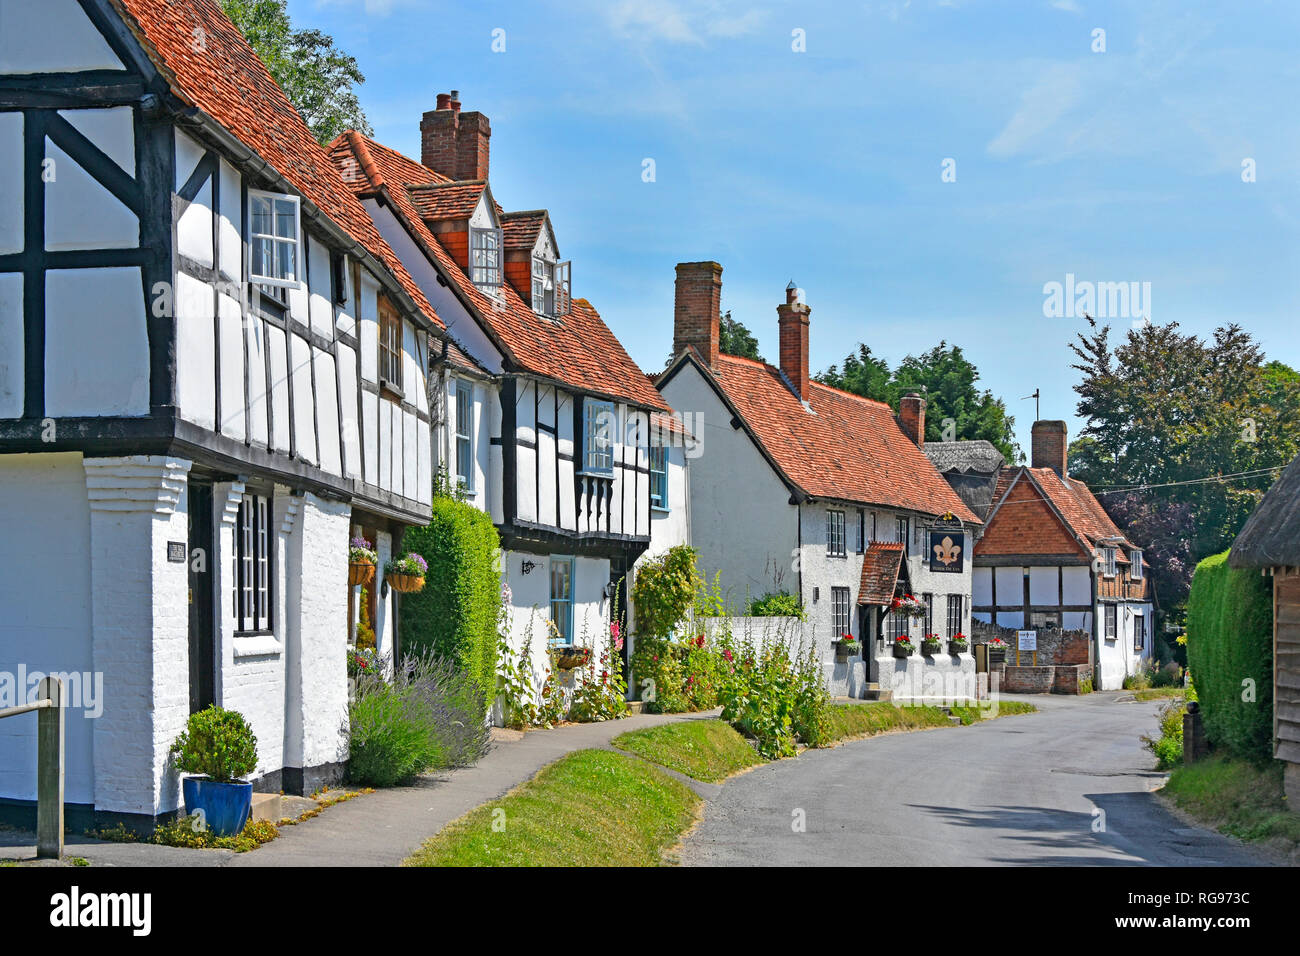 Street scene of grass verge and old black & white half timbered houses with pub beyond in English village of East Hagbourne Oxfordshire England UK - Stock Image